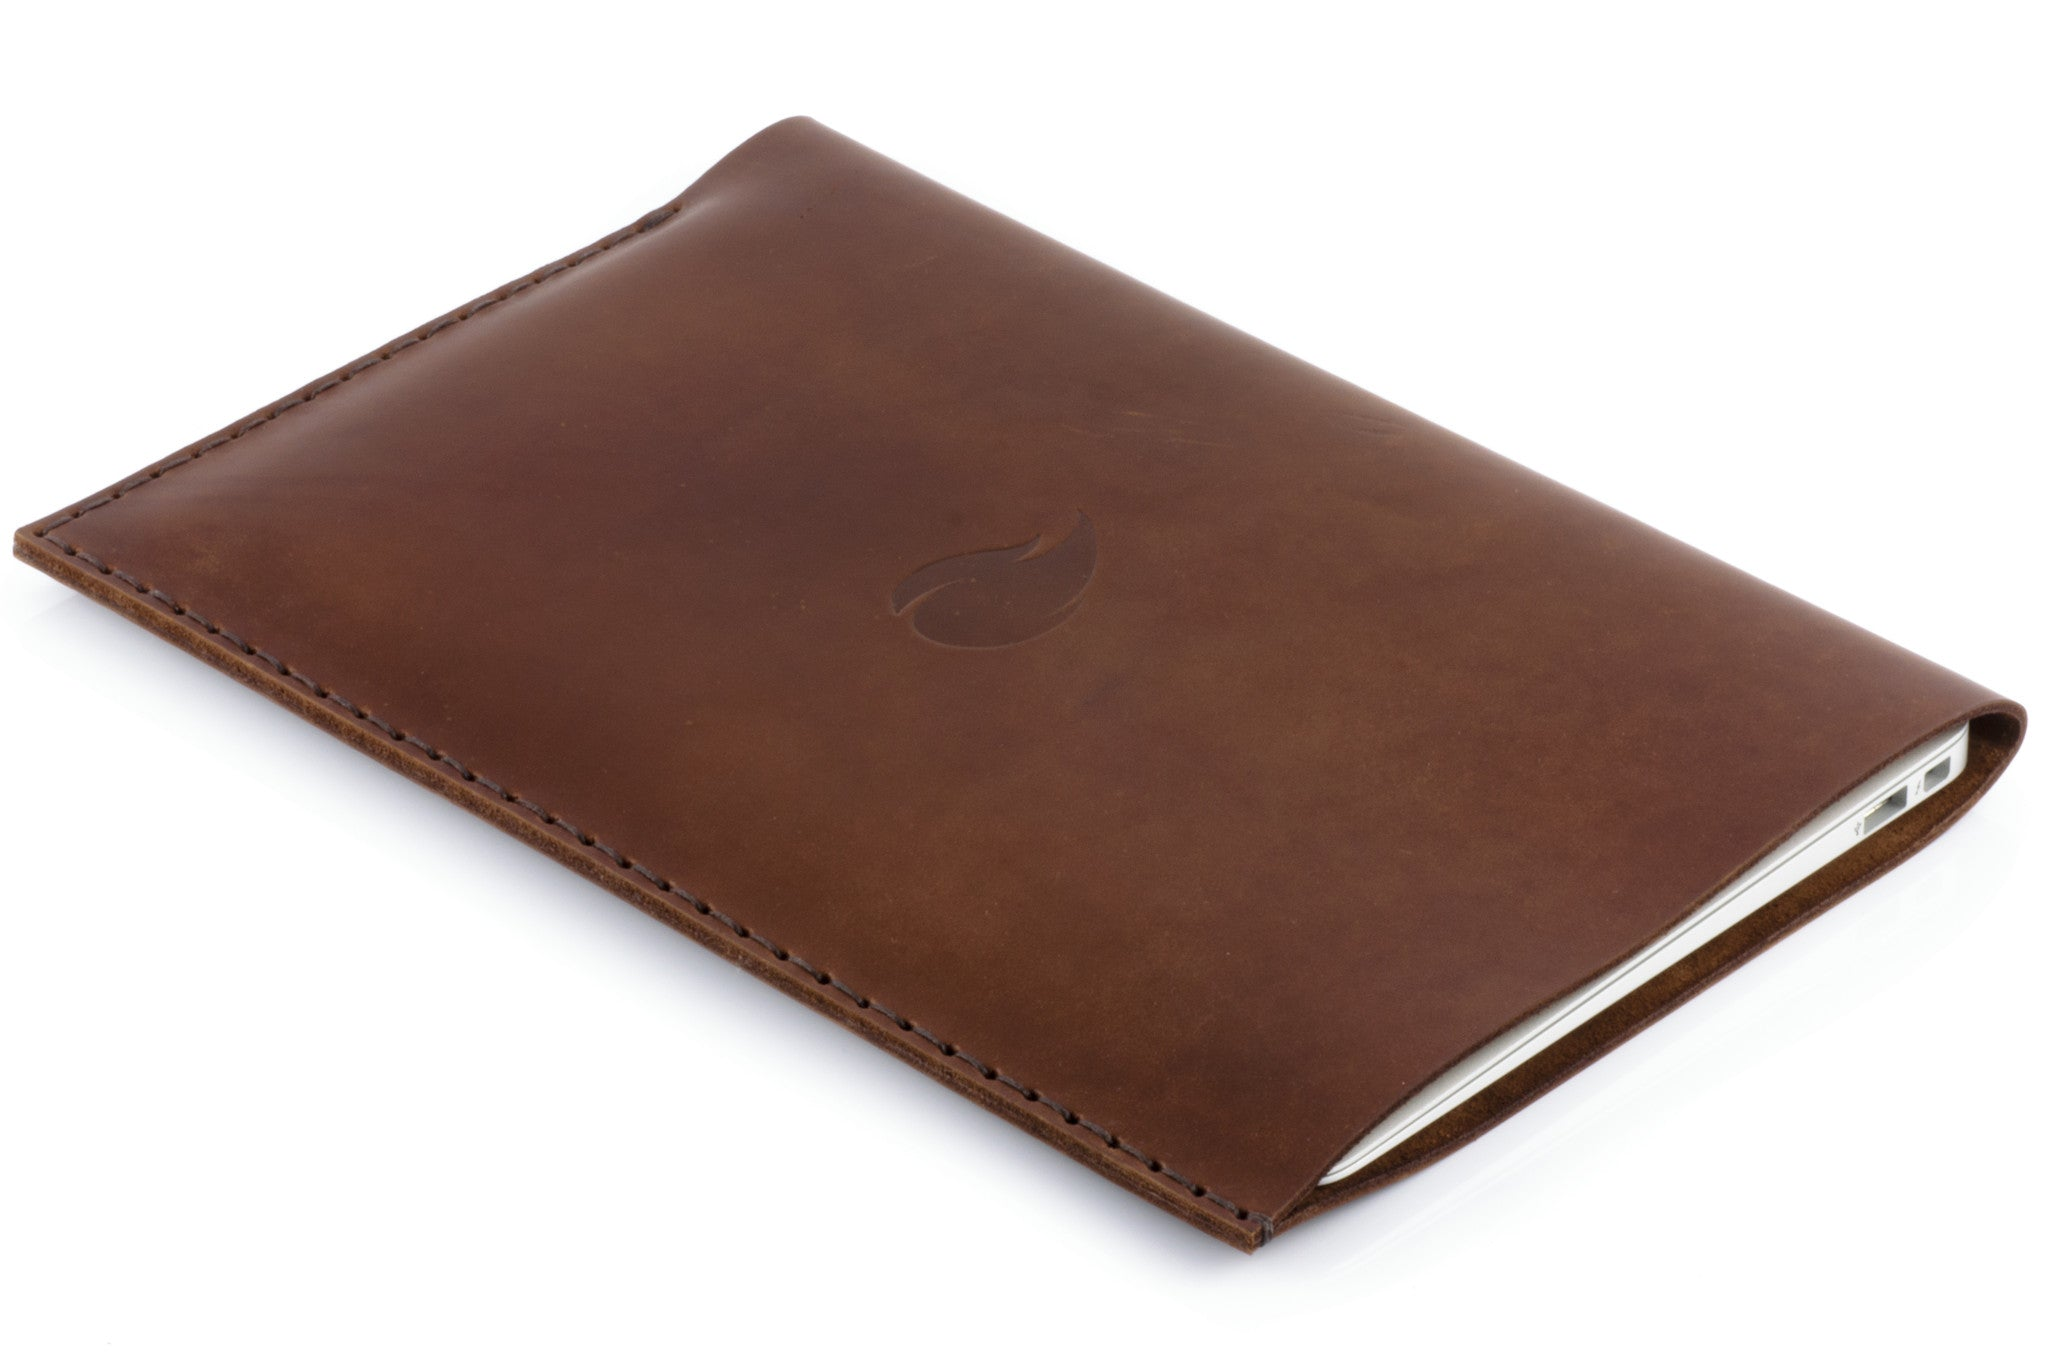 buy online d5550 36cd3 13 inch MacBook Air Leather Sleeve, Burgundy Collection